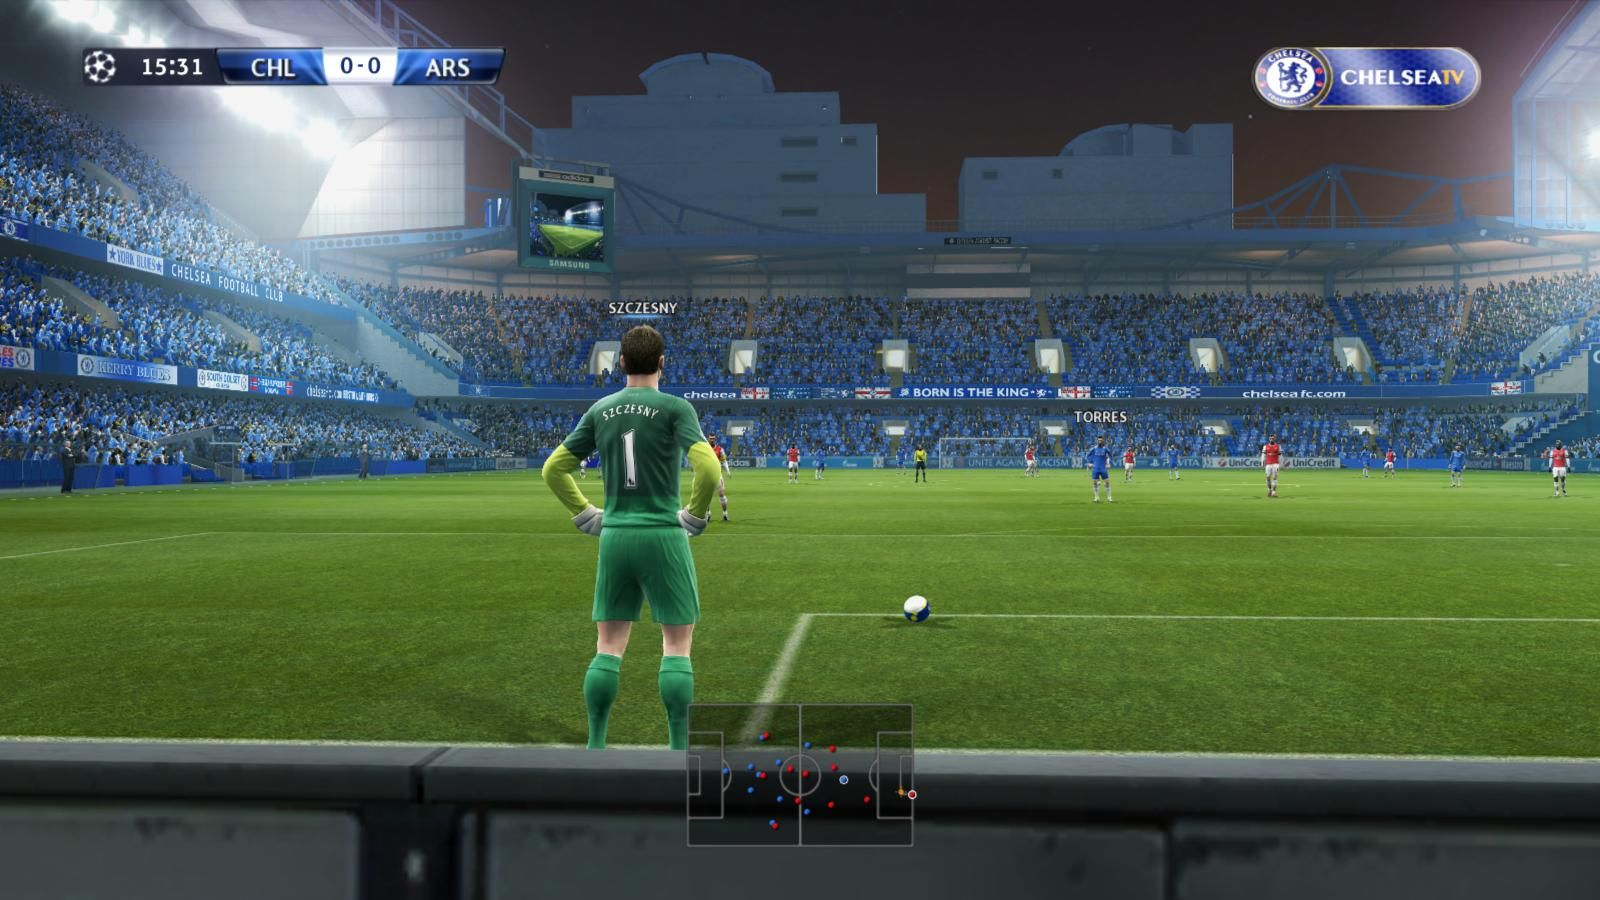 PES 2013 Stamford Bridge Stadium by Gkan - 2